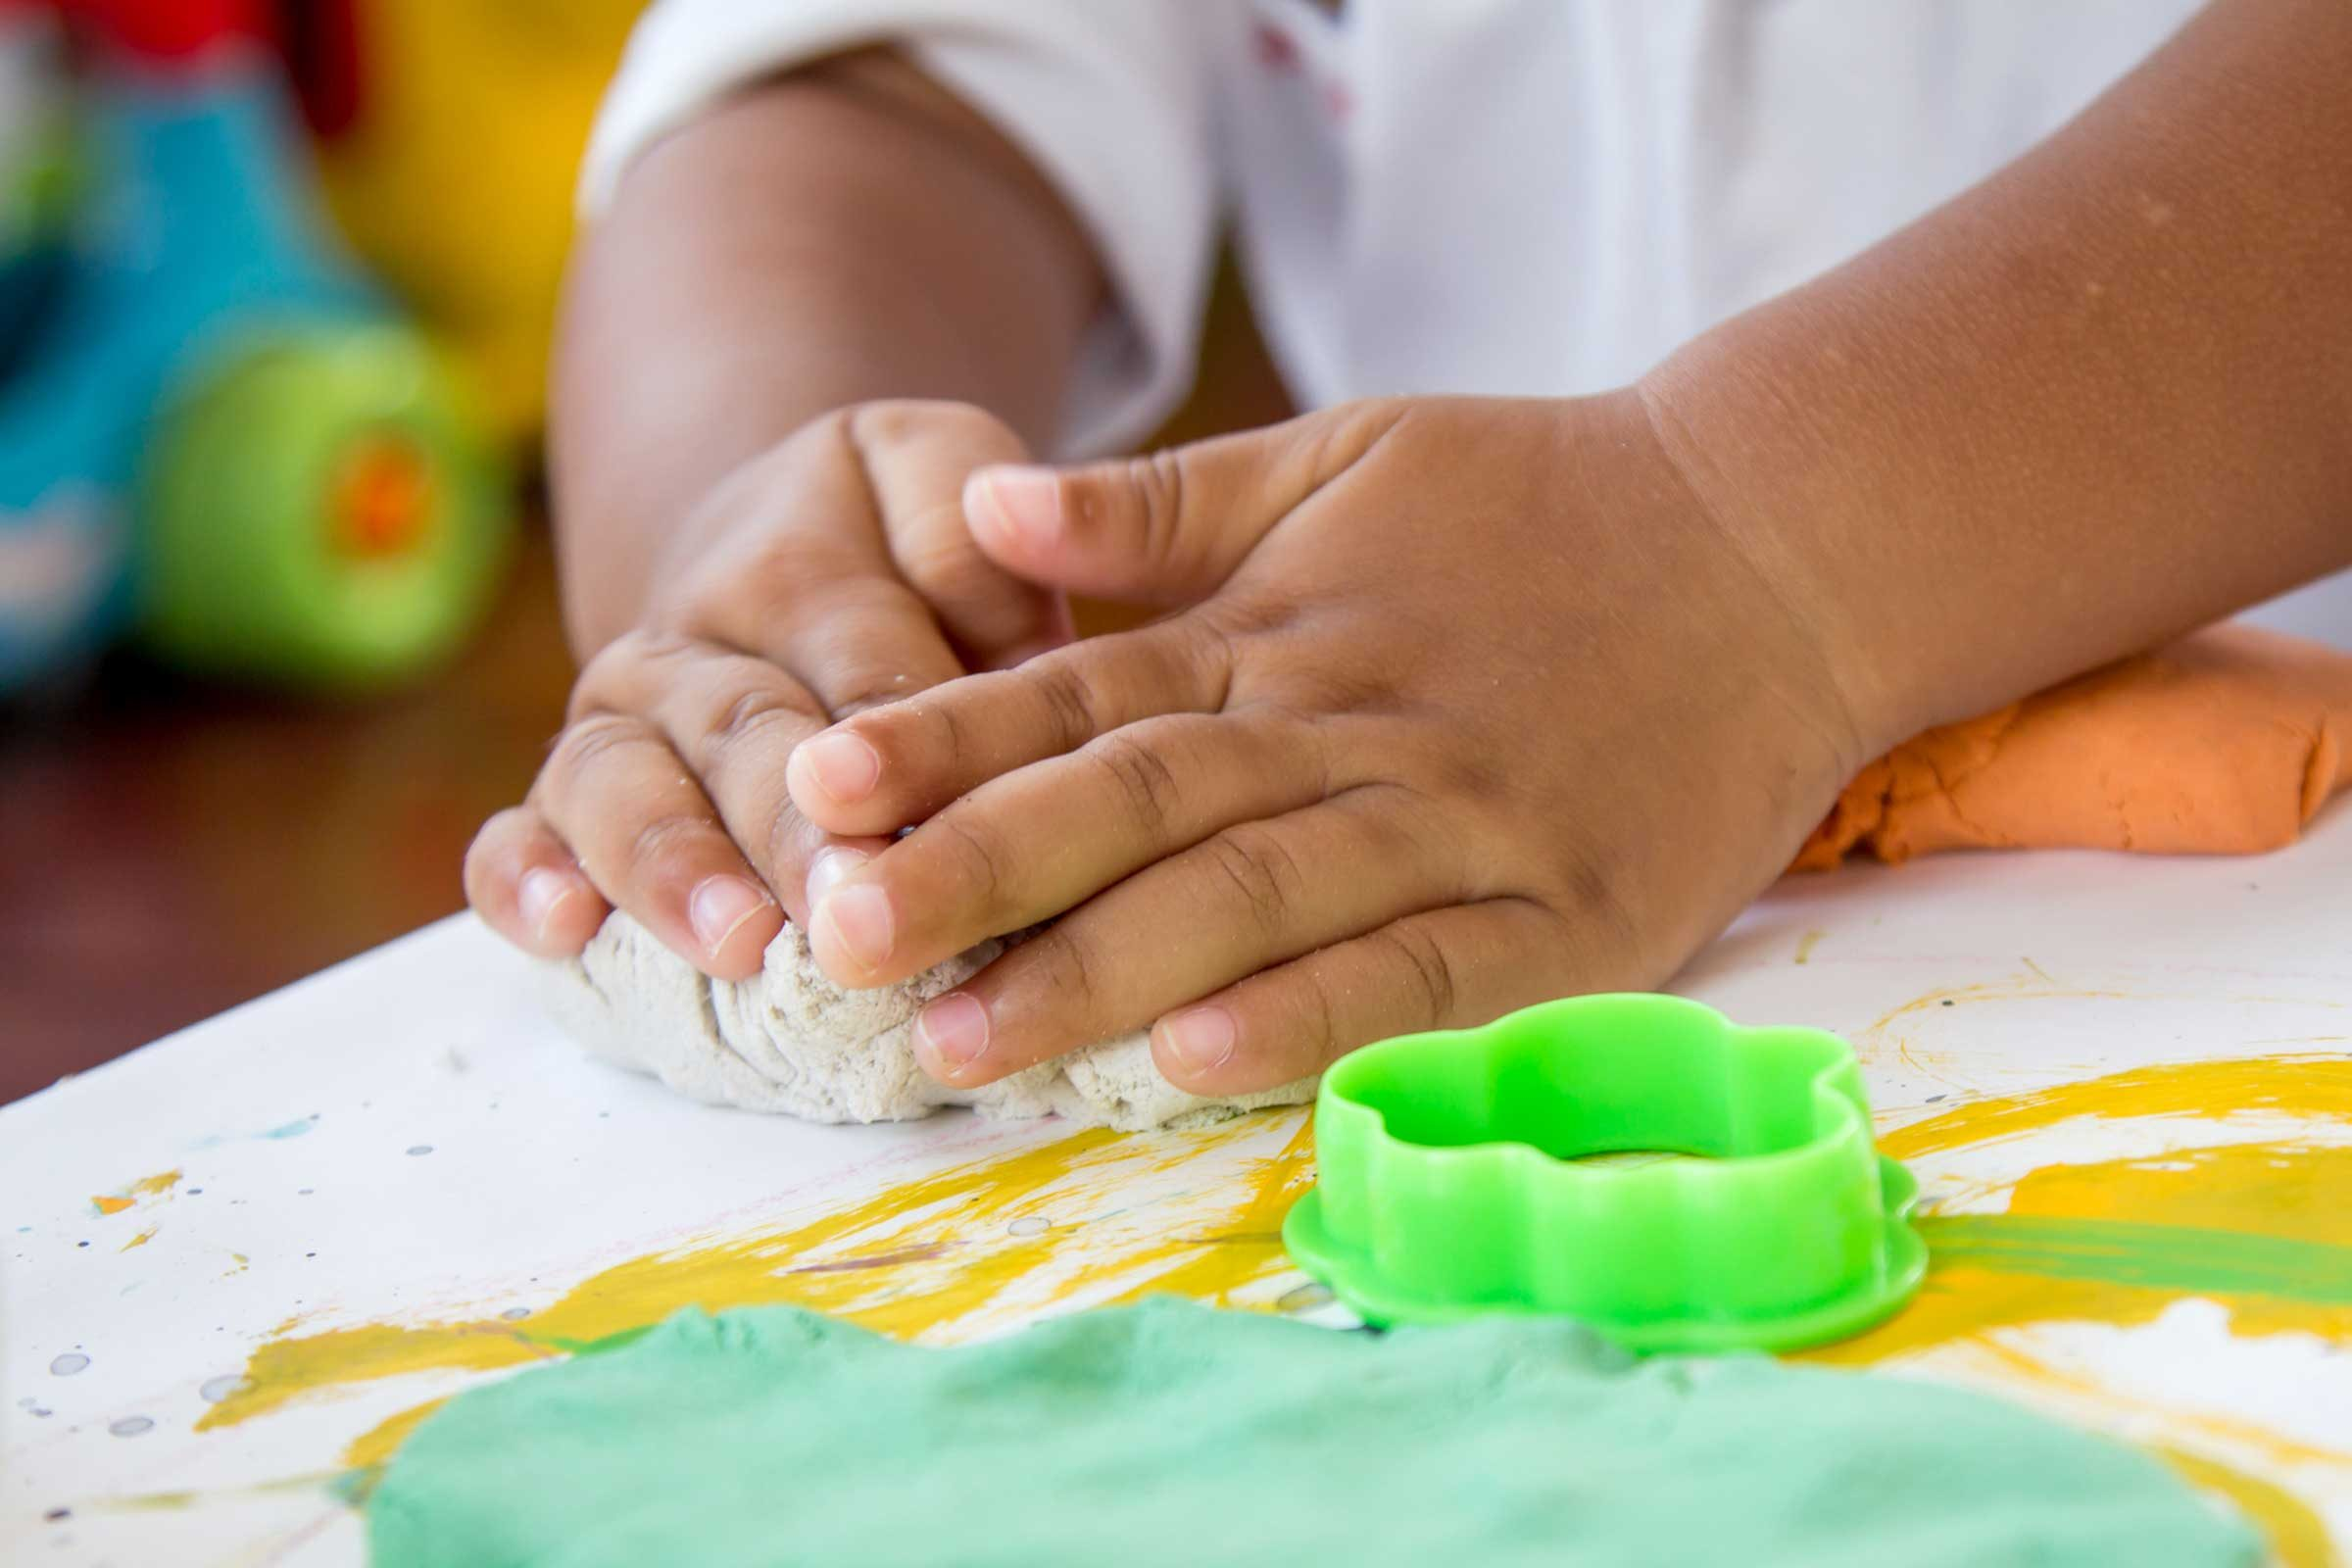 How To Improve Fine Motor Skills For Toddlers